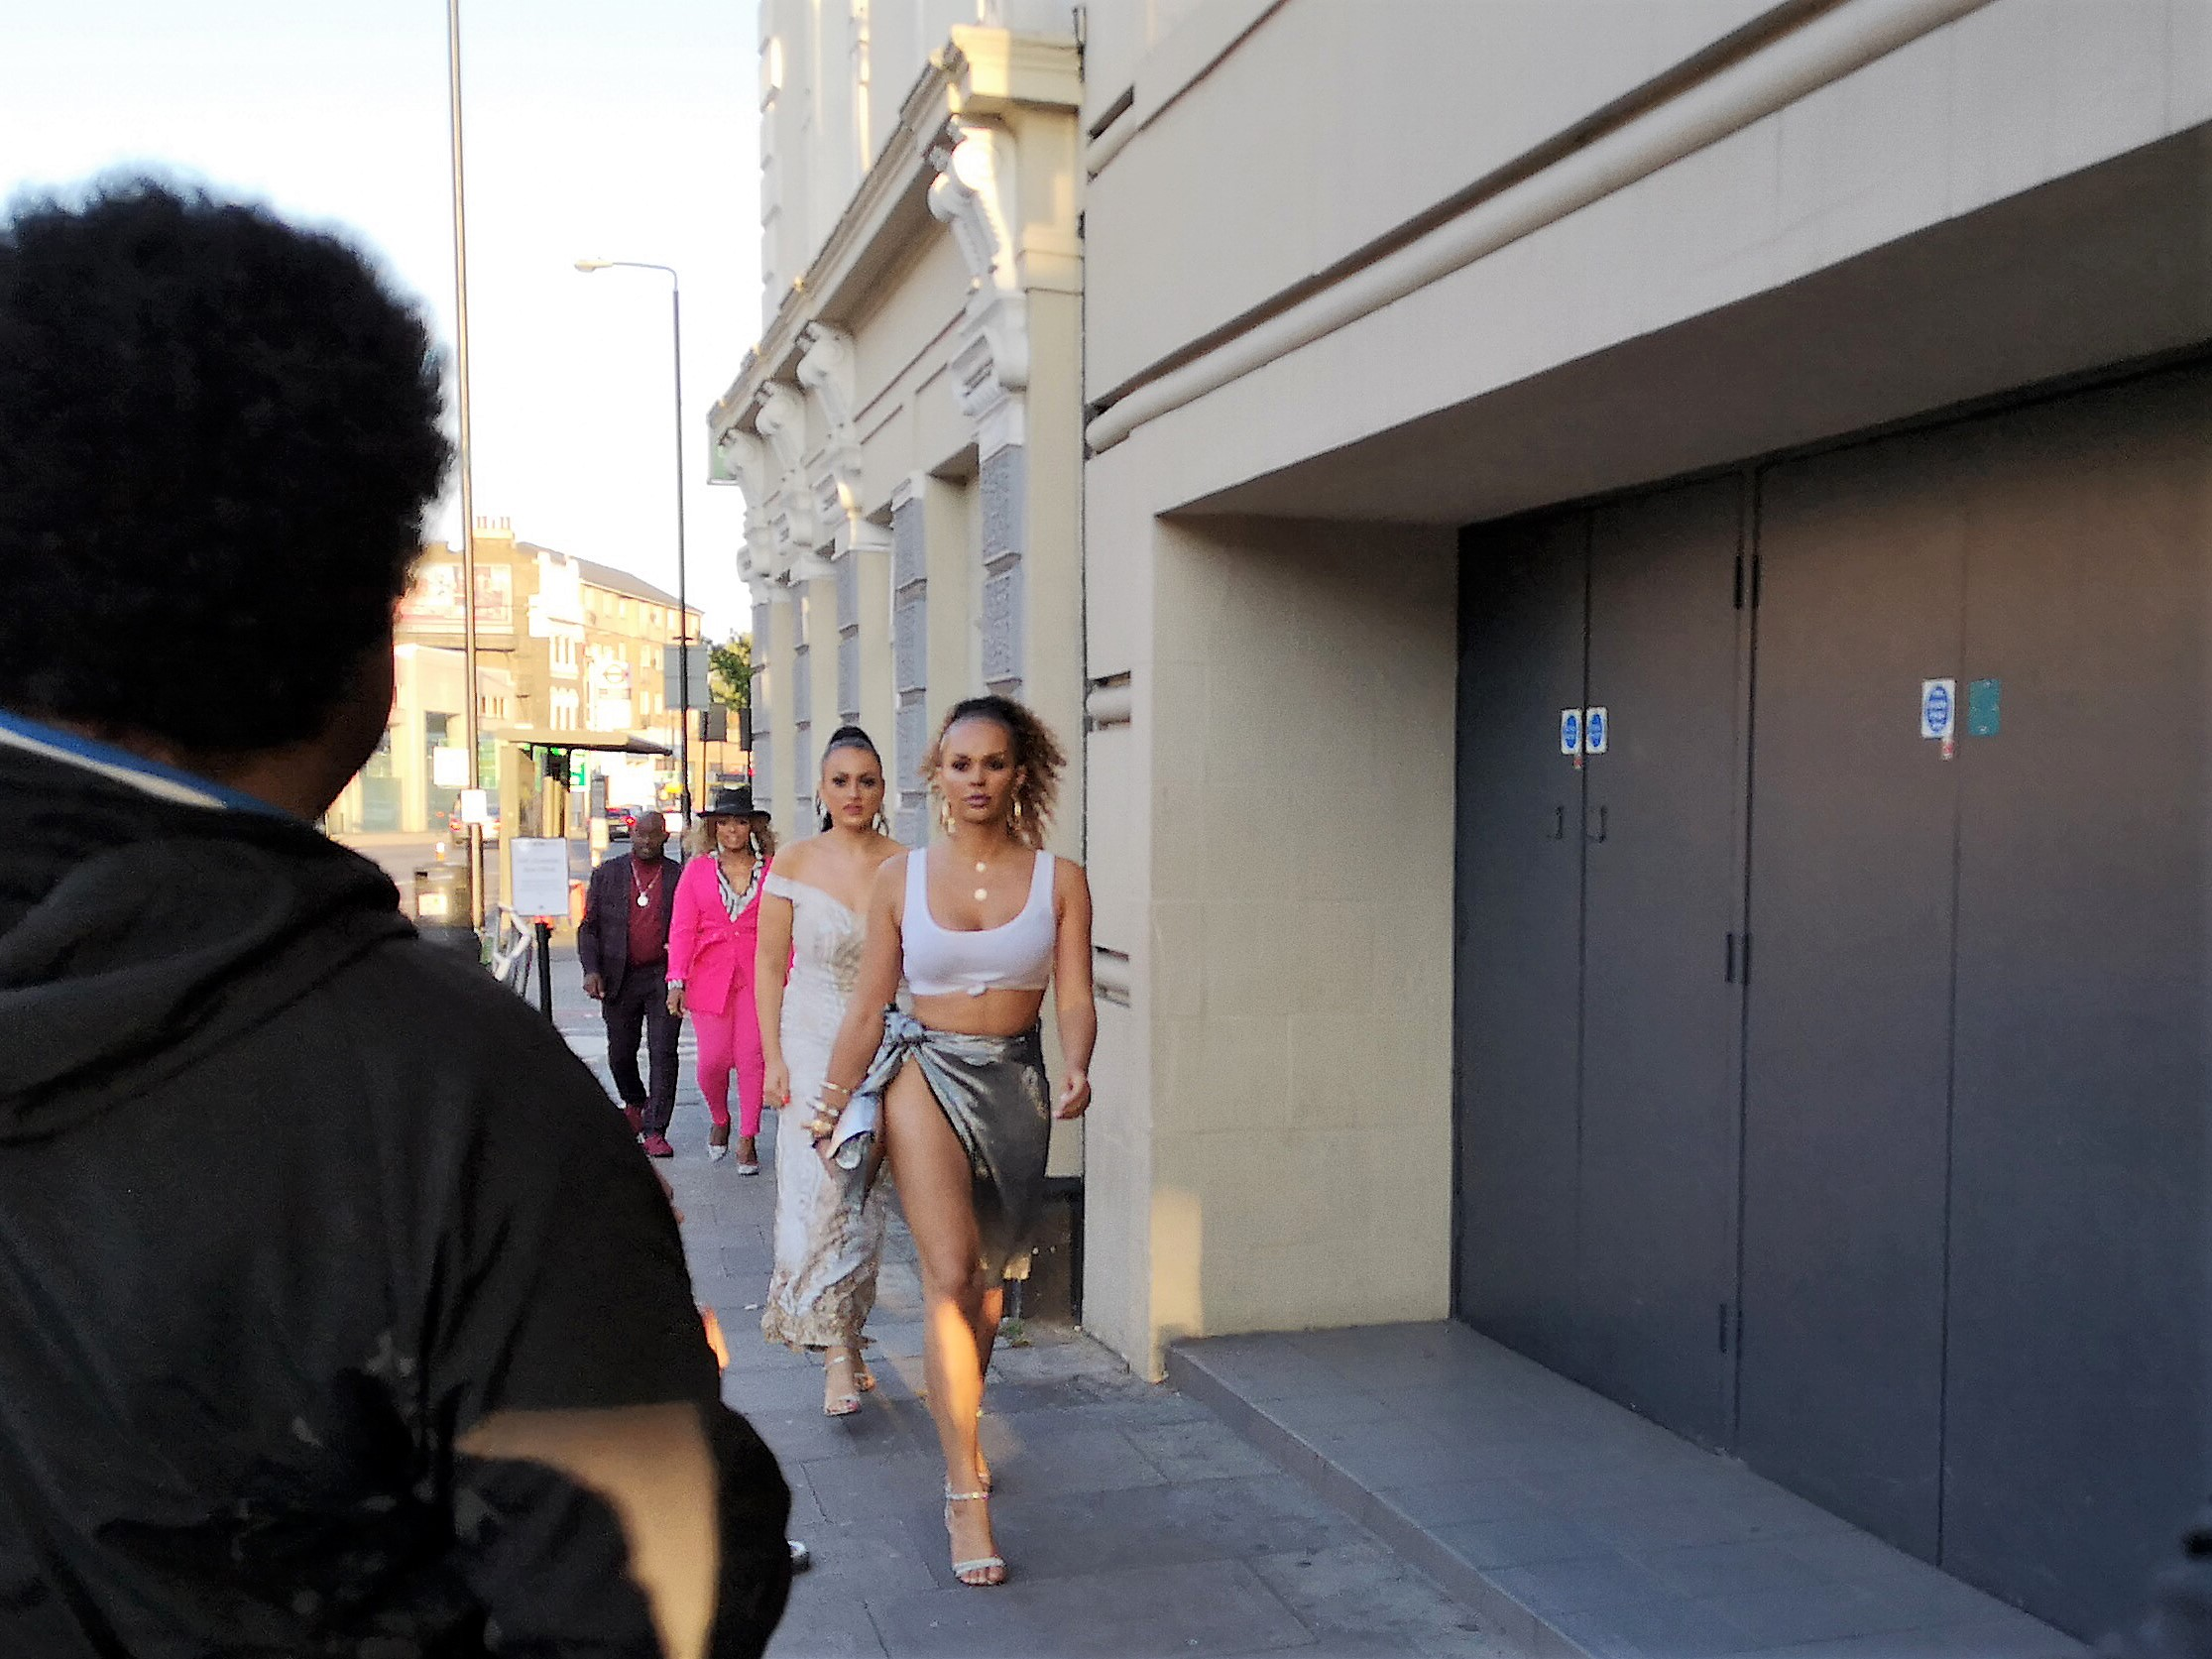 If you think I'm a guy who just takes photos of lightly dressed women walking down the street, I just want to say: Wireimage confirms she's famous, she's Talulah Eve, so it's okay.